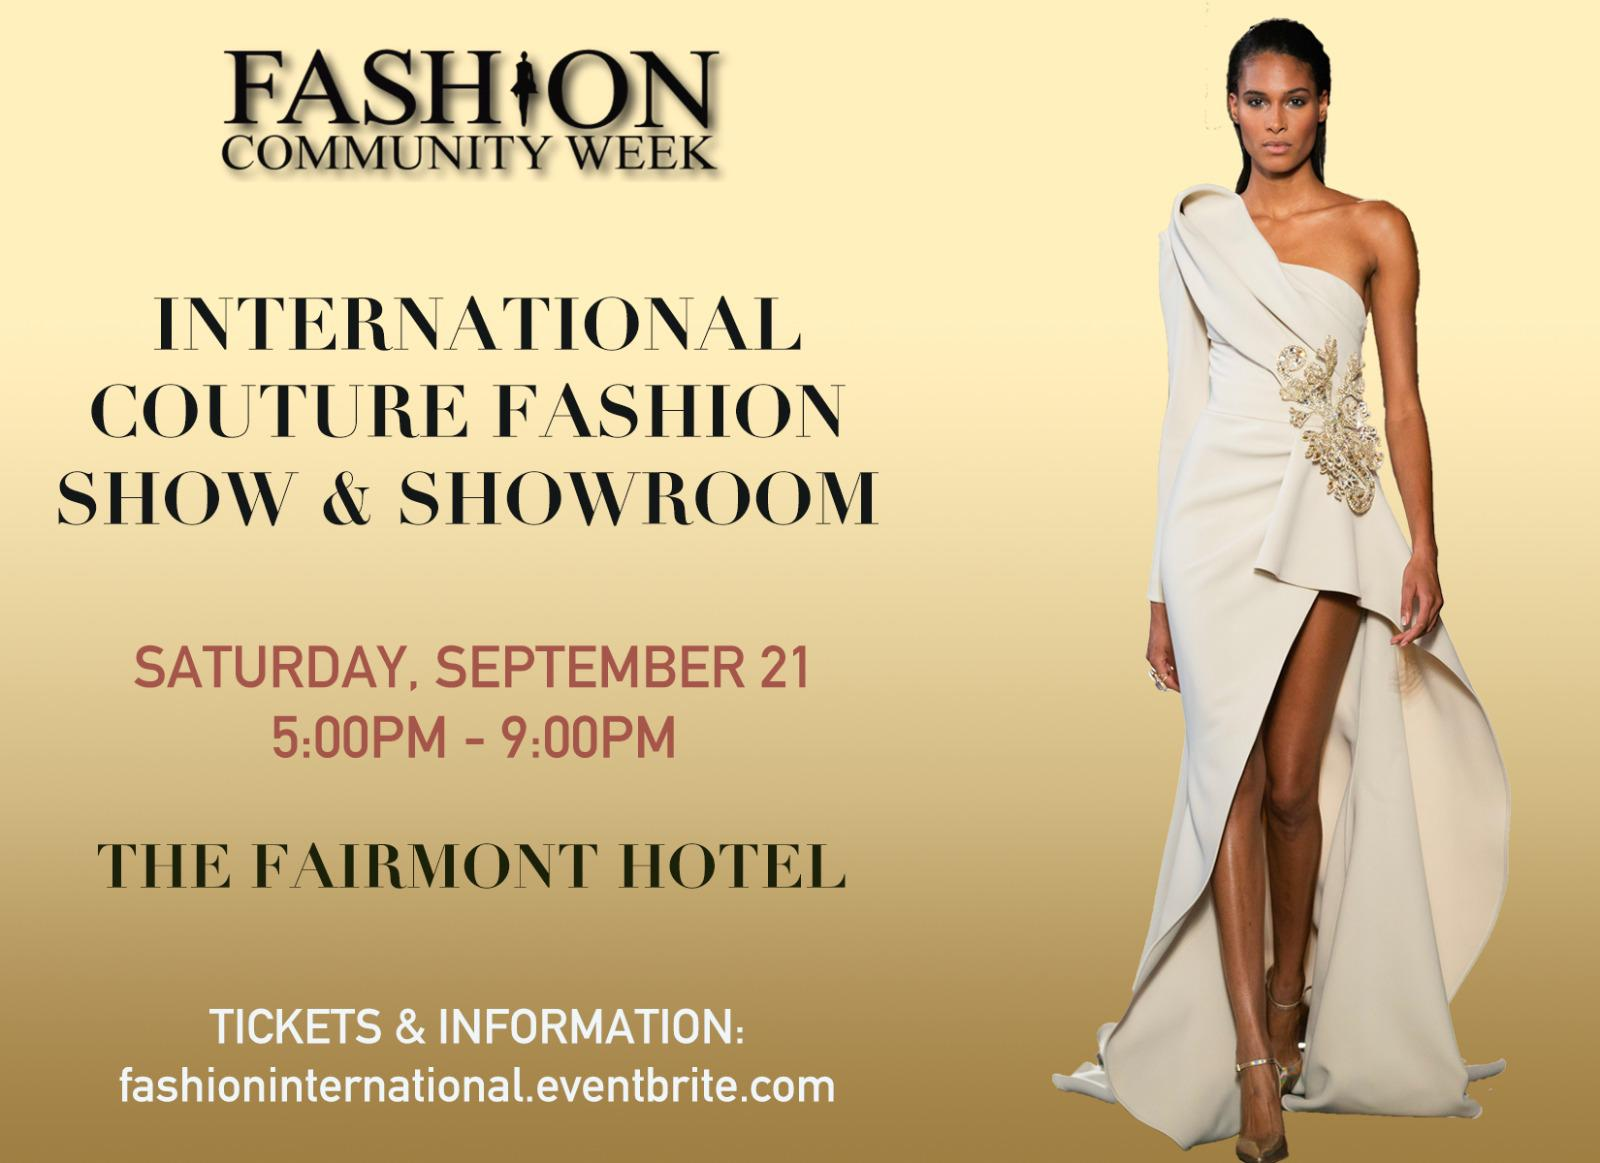 International Designs Couture Fashion Show At The Fairmont San Francisco In San Francisco August 21 2019 Sf Station